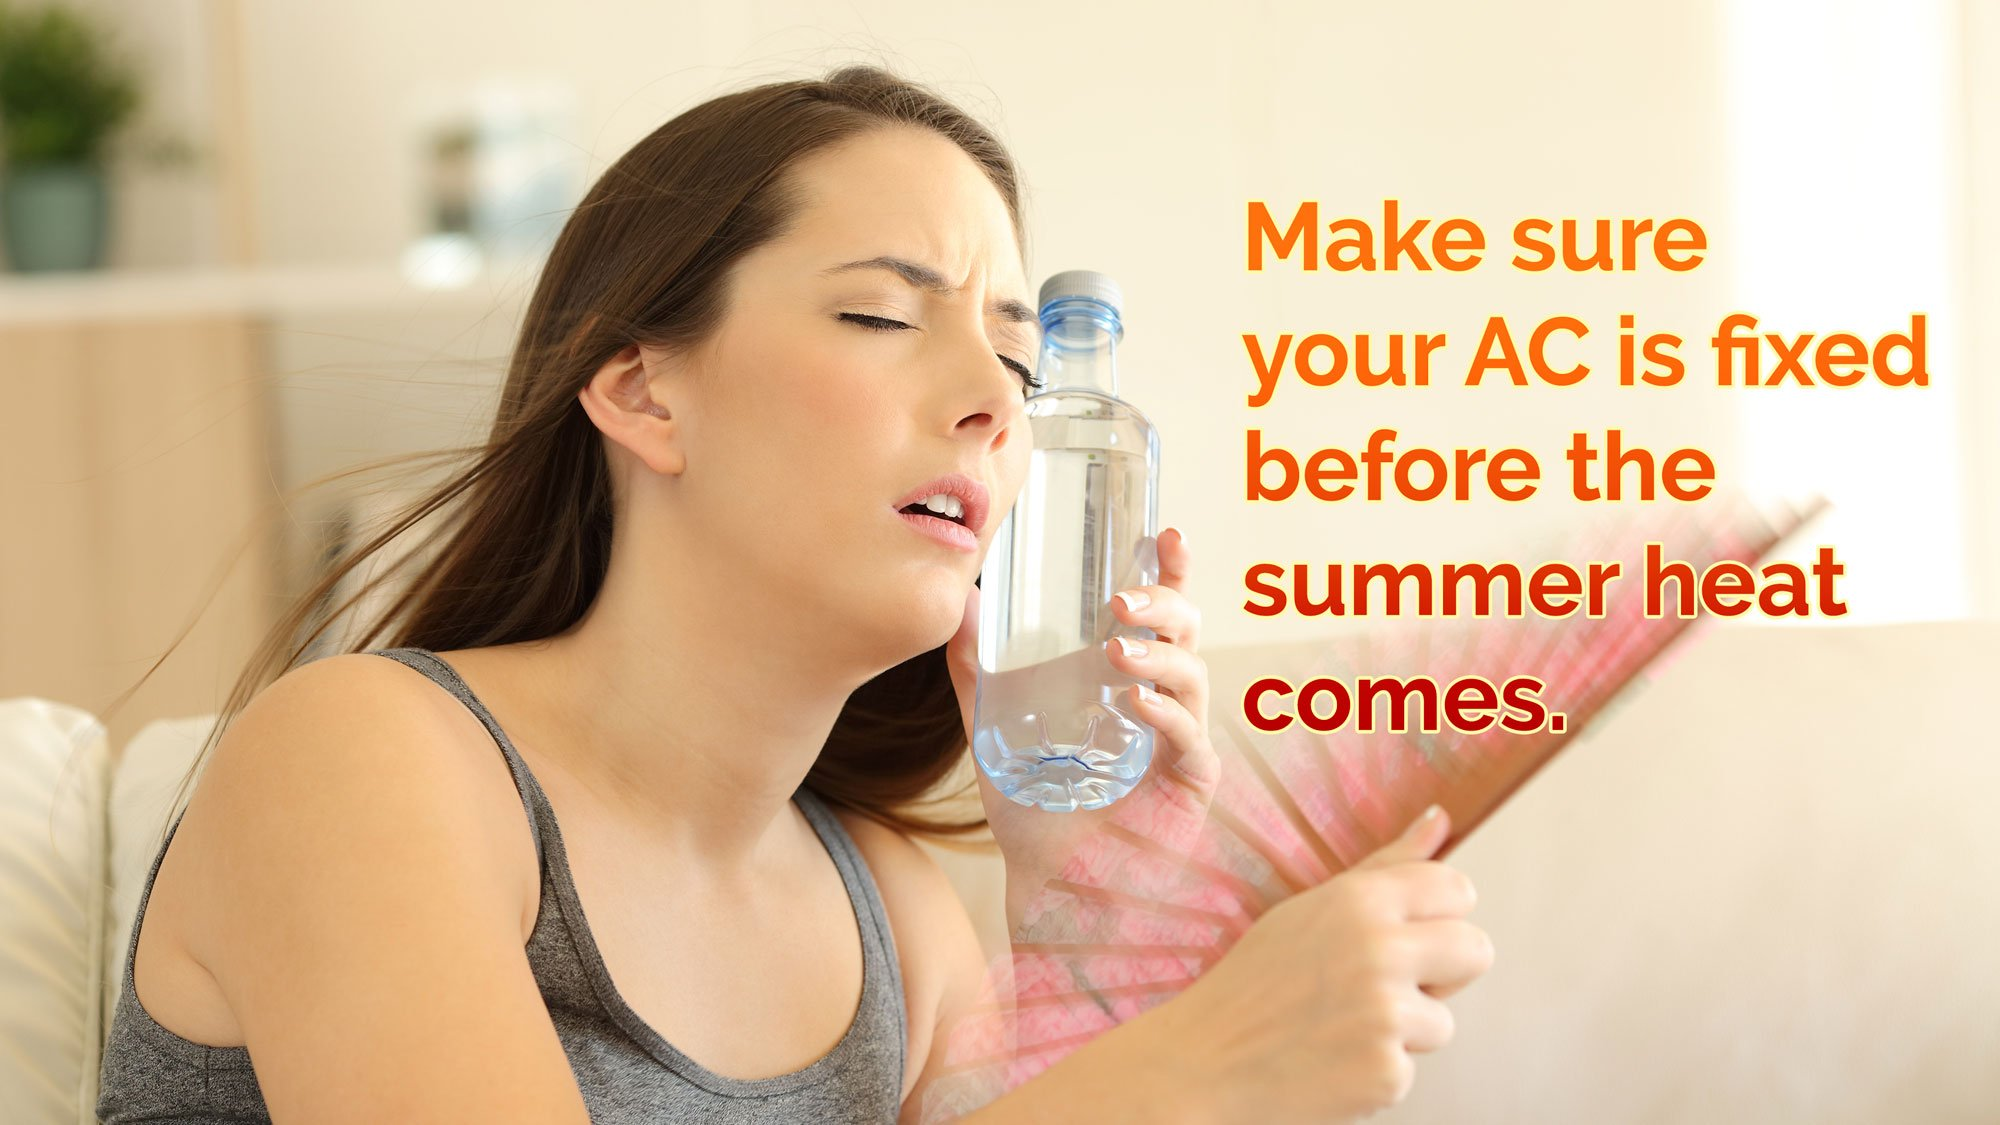 get-your-ac-repaired-before-summer